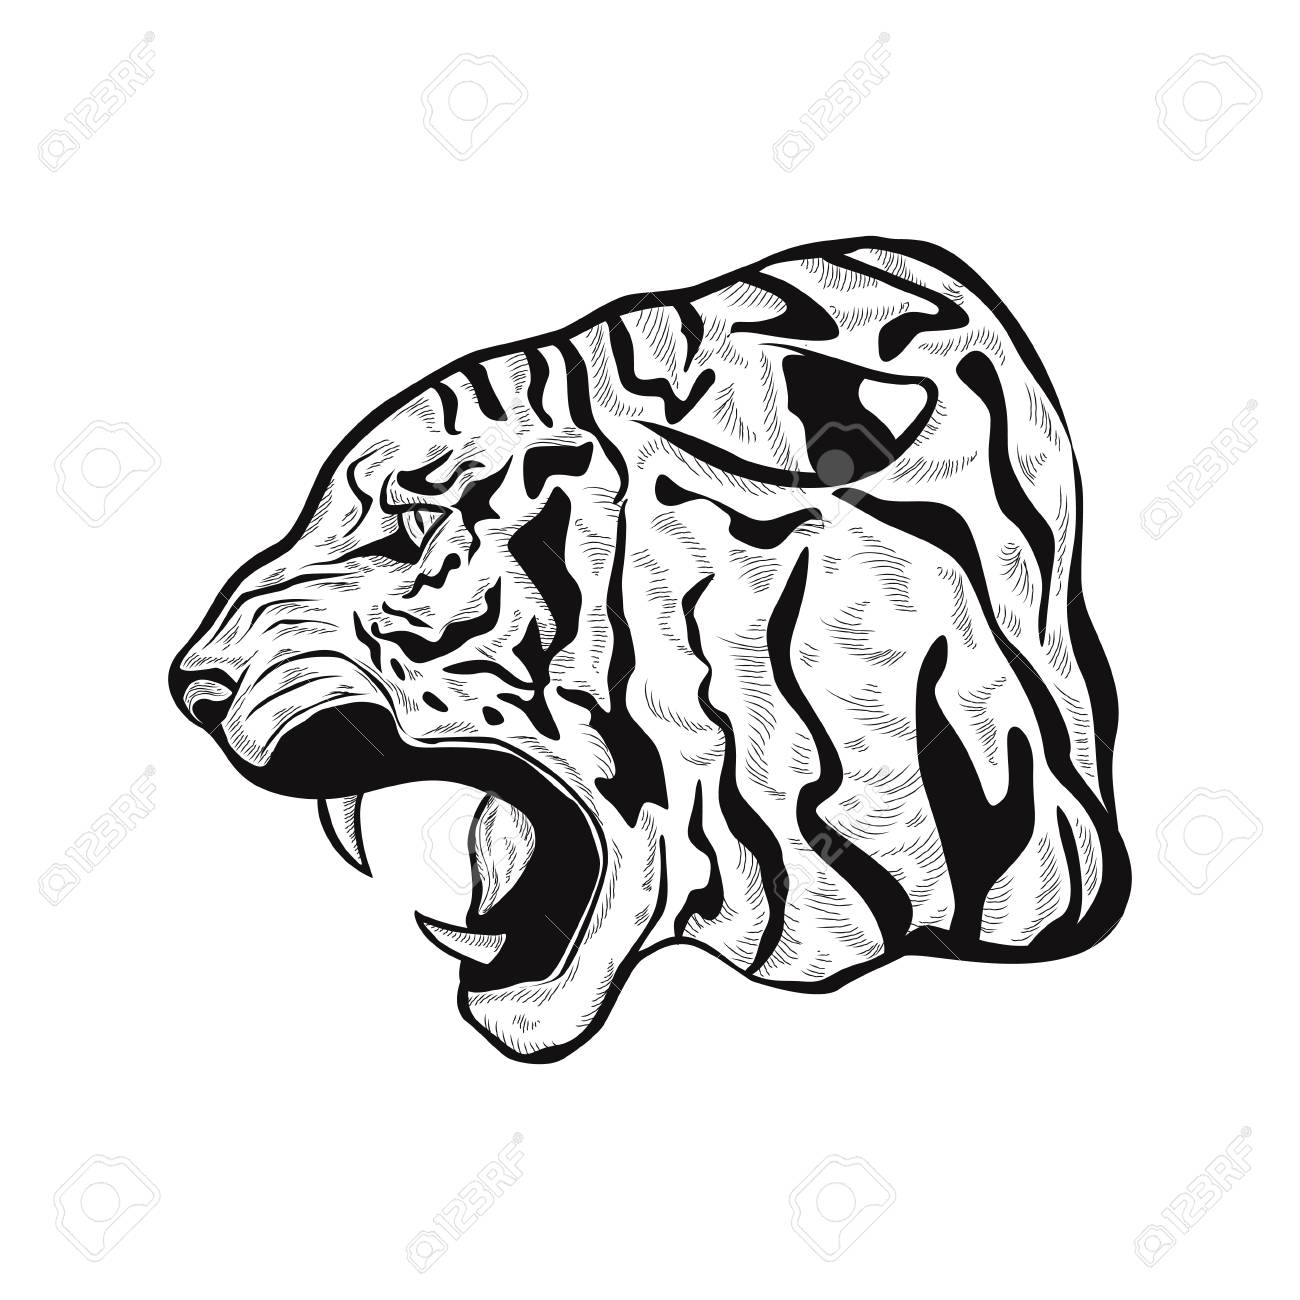 1300x1300 Outline Illustration Of An Anger Tiger Head, Hand Drawn Stylized